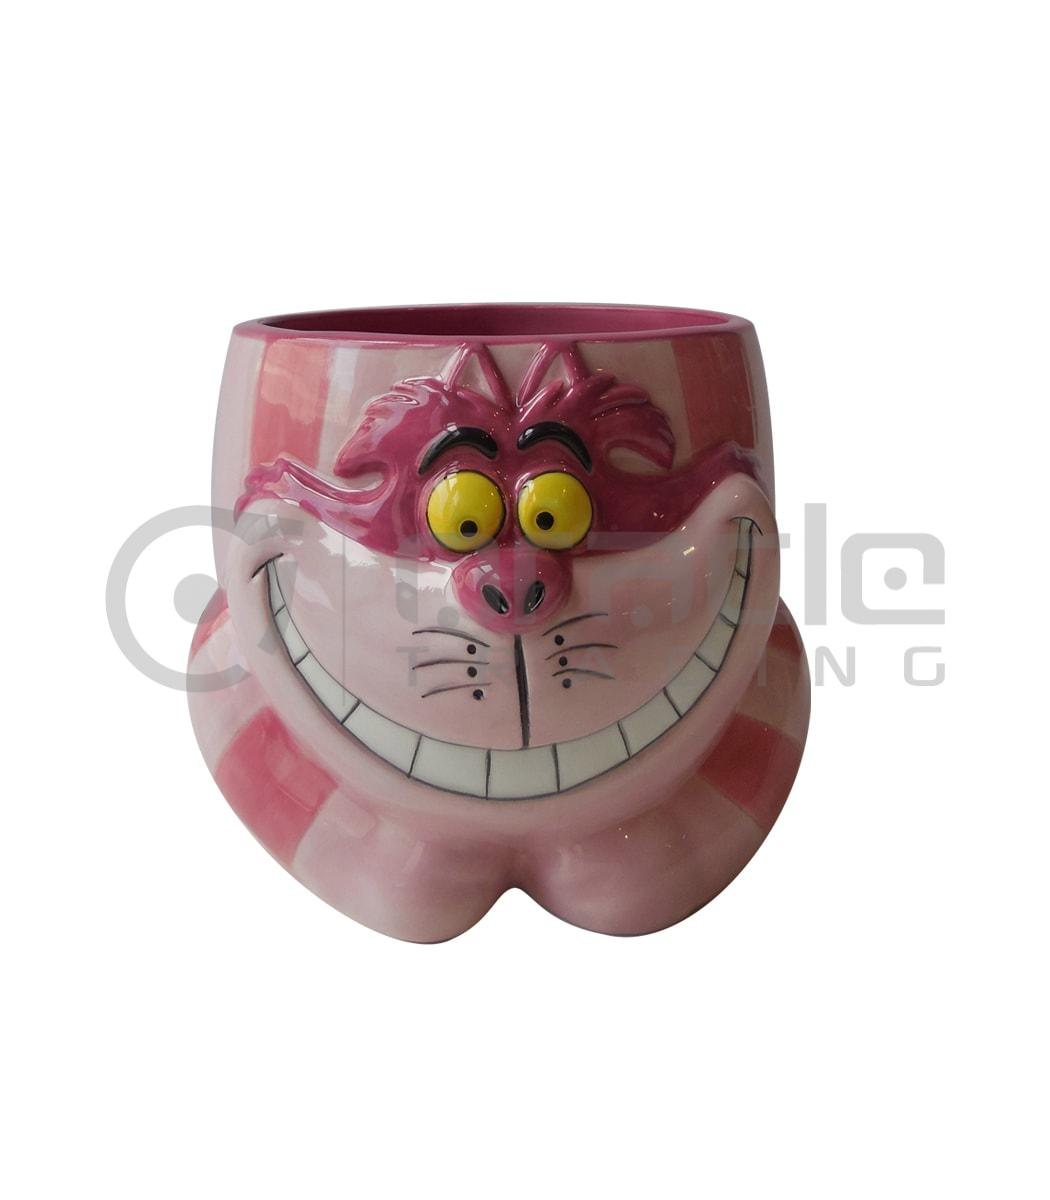 Alice in Wonderland 3D Shaped Mug - Cheshire Cat